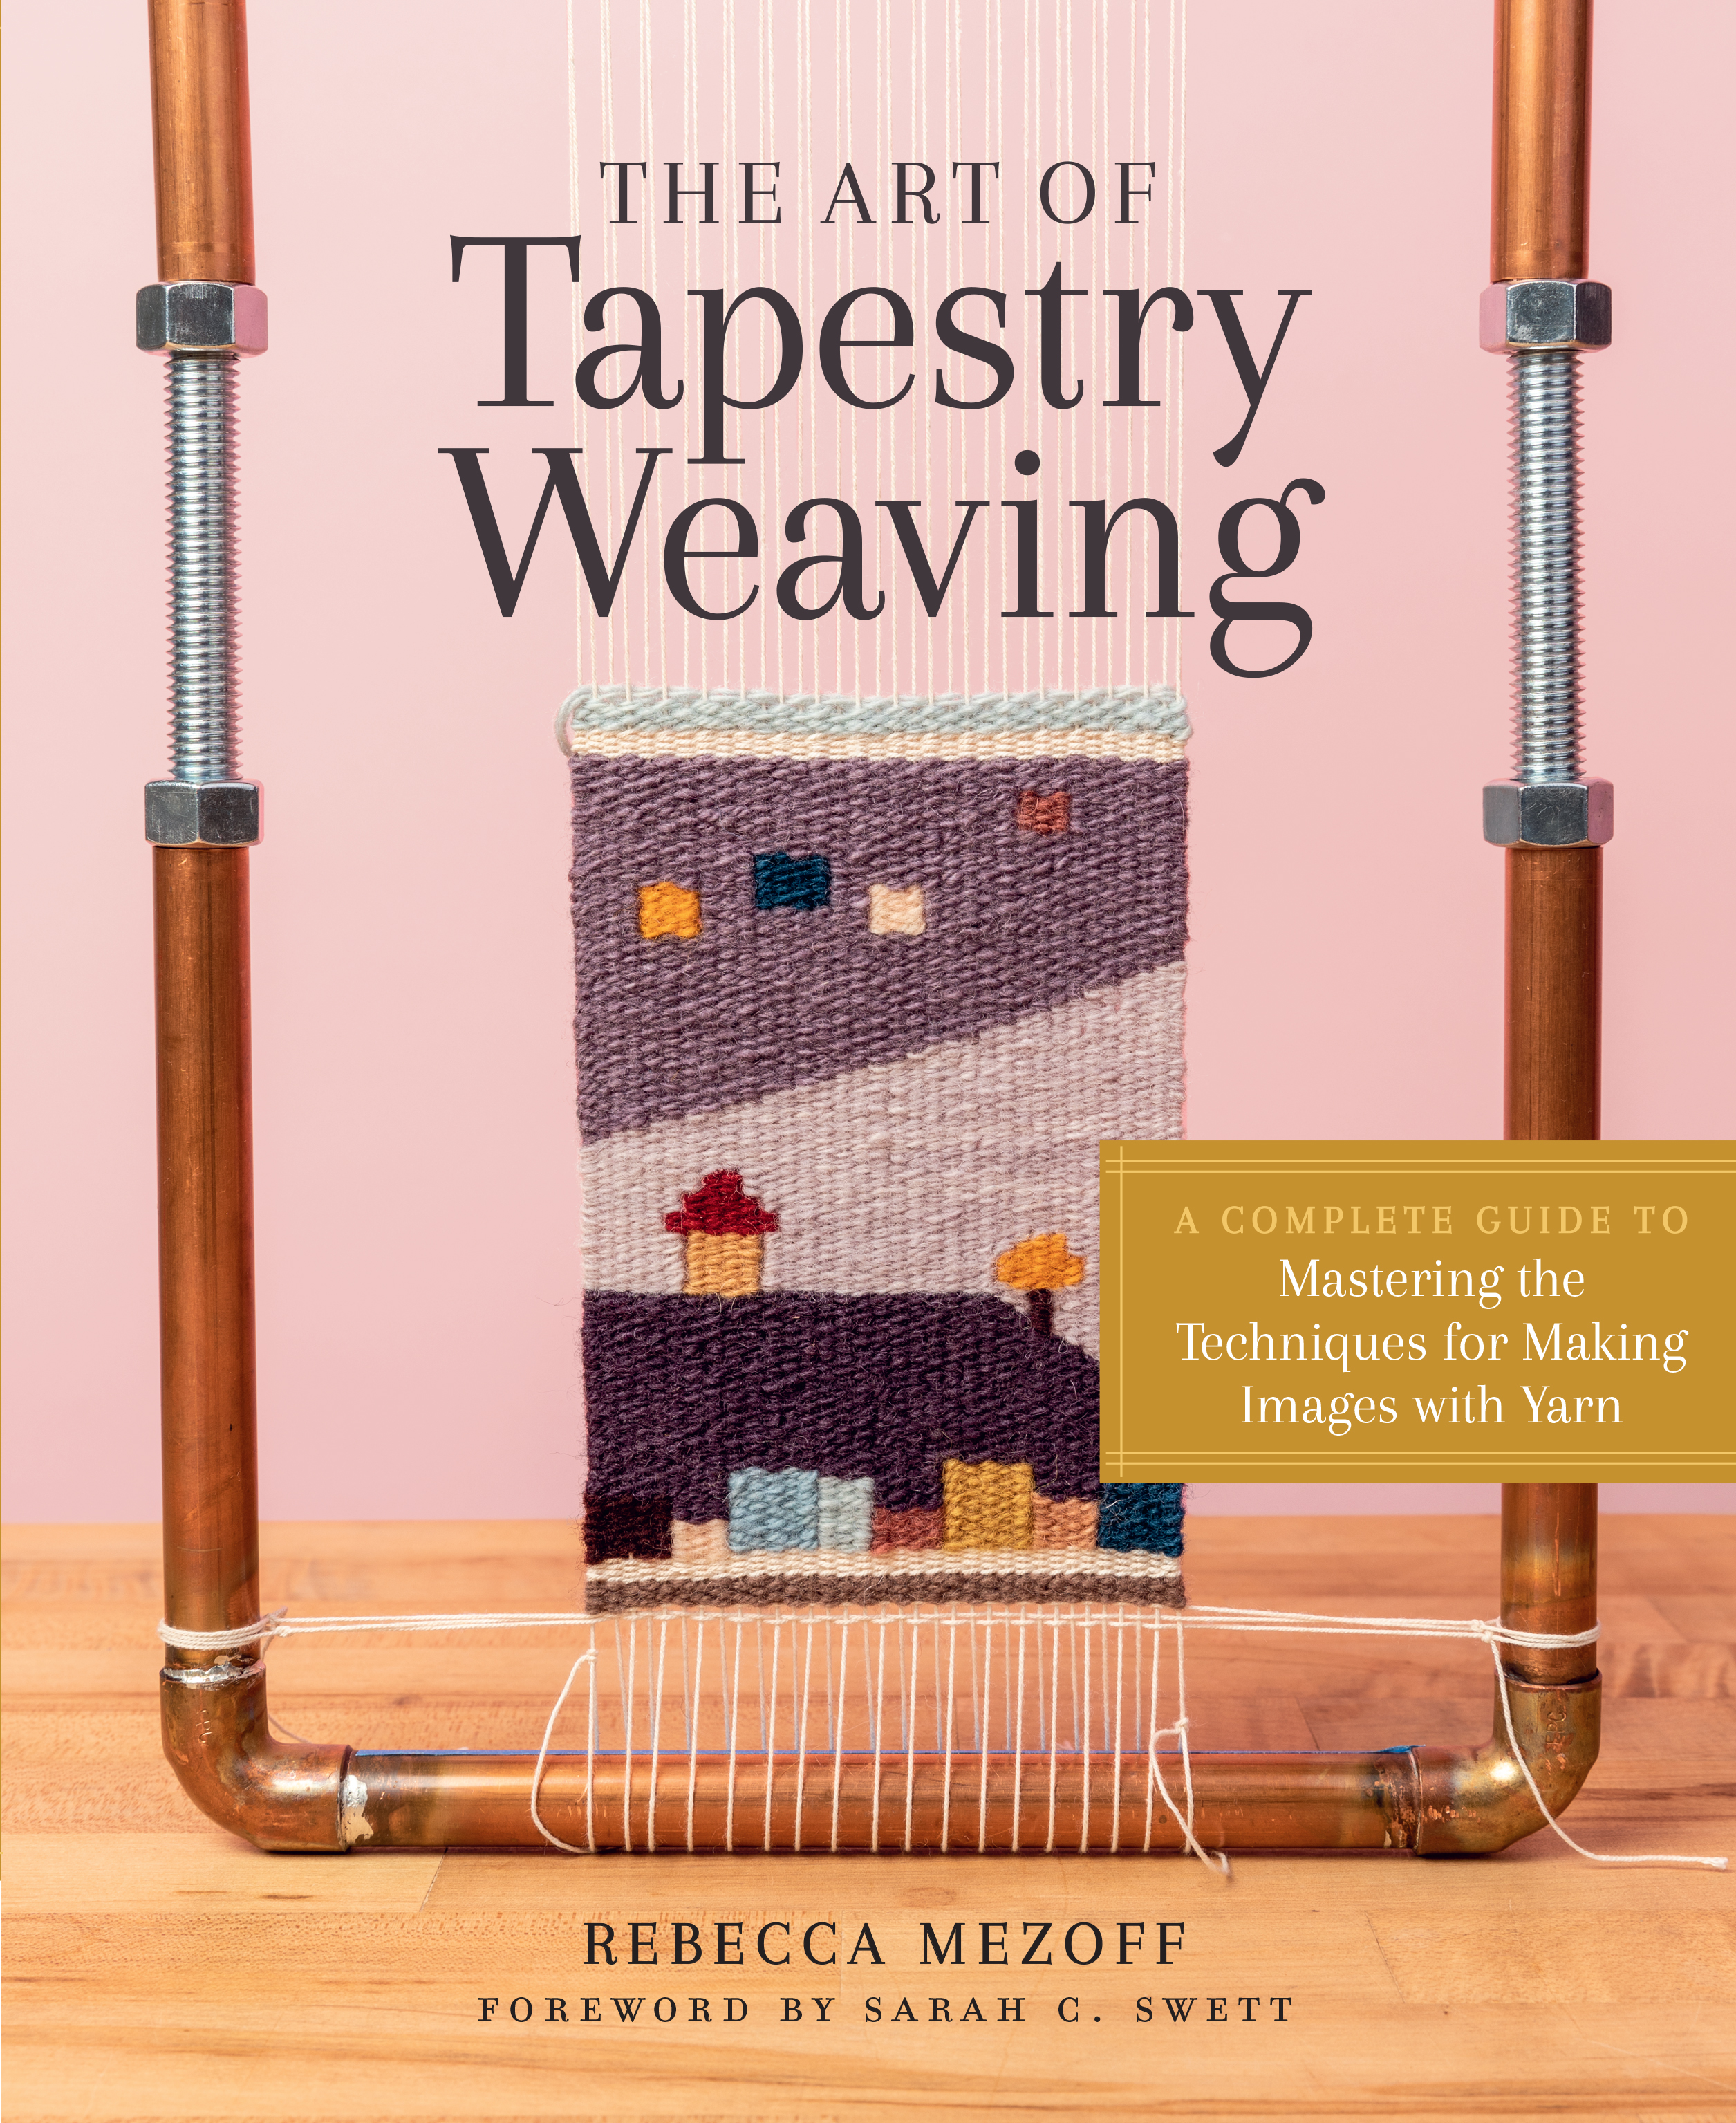 The Art of Tapestry Weaving